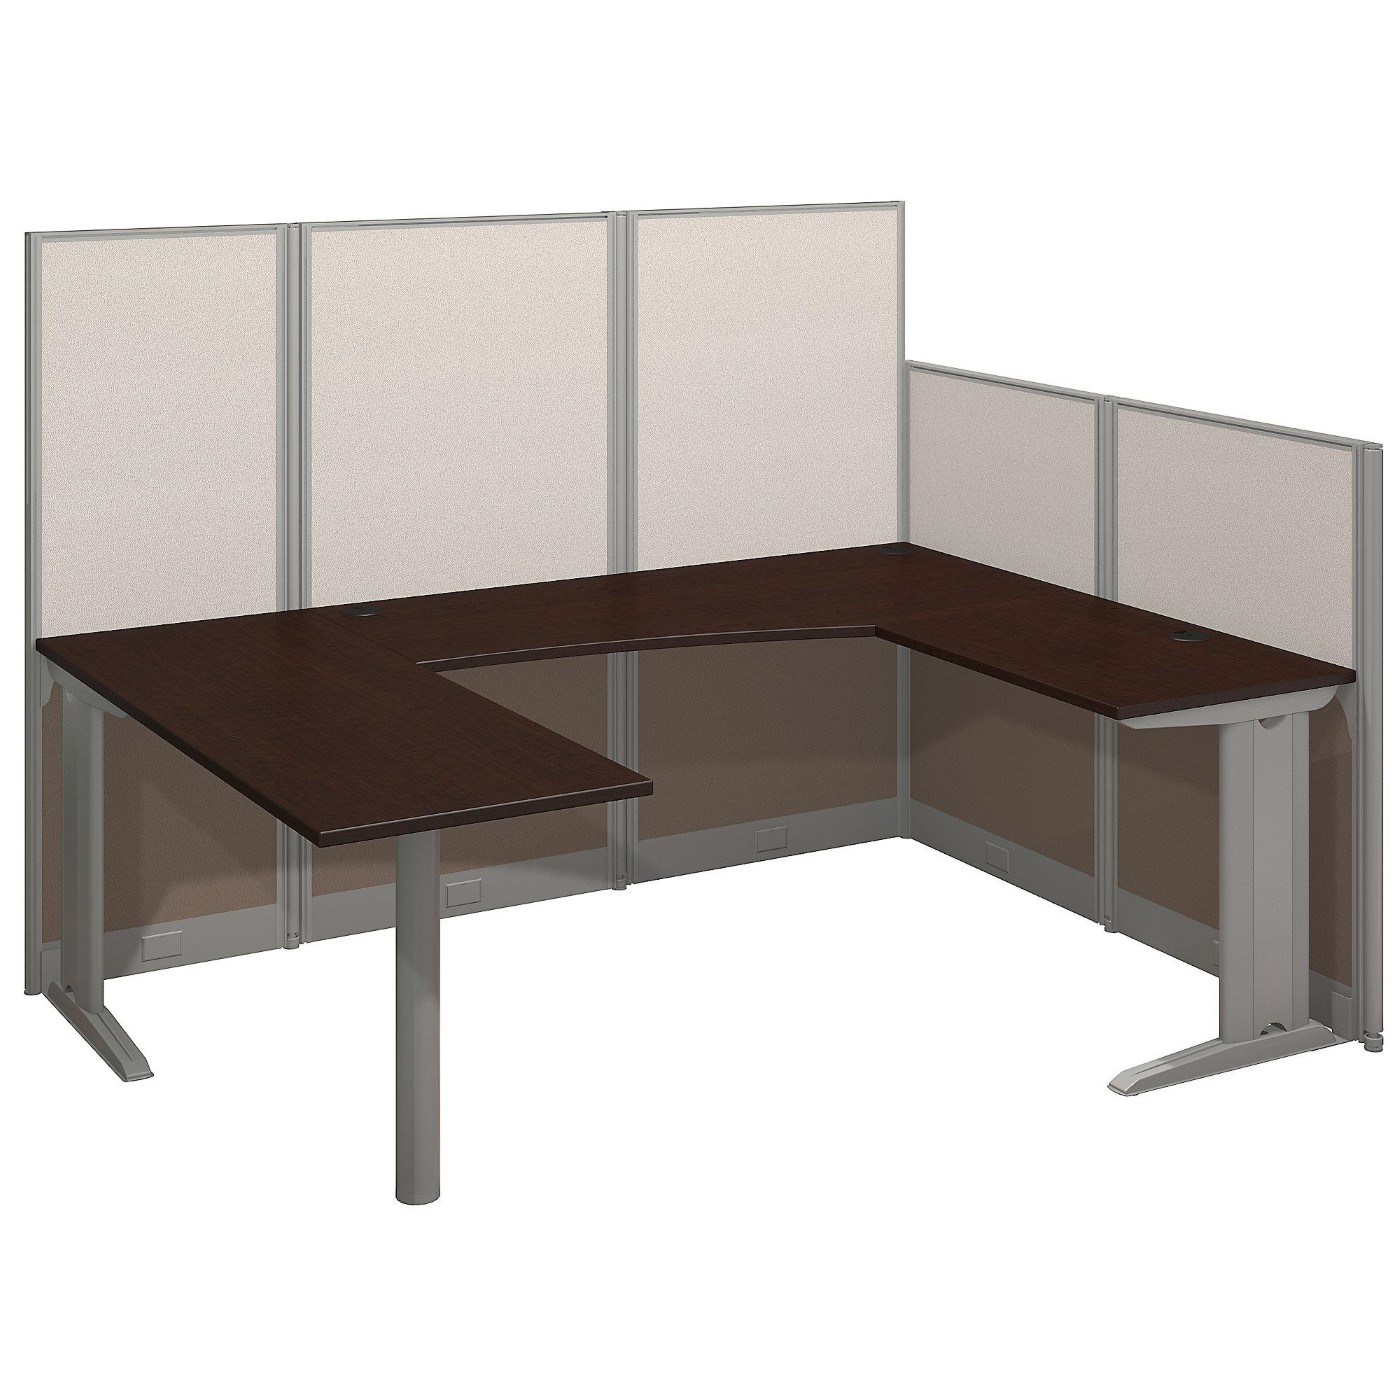 BUSH BUSINESS FURNITURE OFFICE IN AN HOUR 89W X 65D U SHAPED CUBICLE WORKSTATION. FREE SHIPPING.  SALE DEDUCT 10% MORE ENTER '10percent' IN COUPON CODE BOX WHILE CHECKING OUT. ENDS 5-31-20.